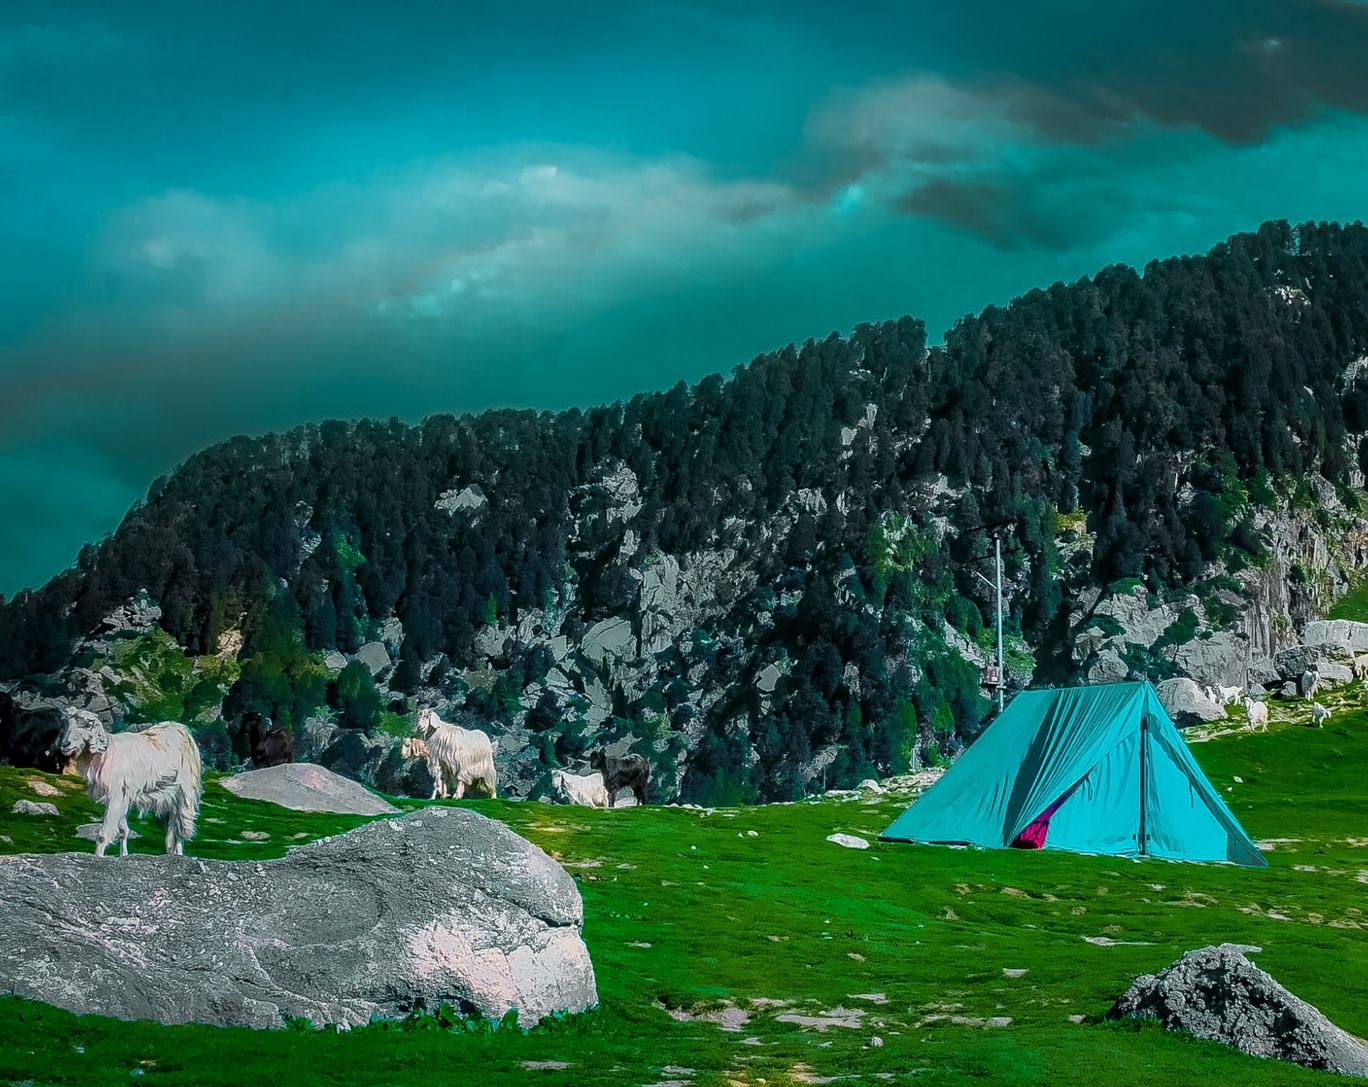 Photo of Triund By Sudhir Kumar